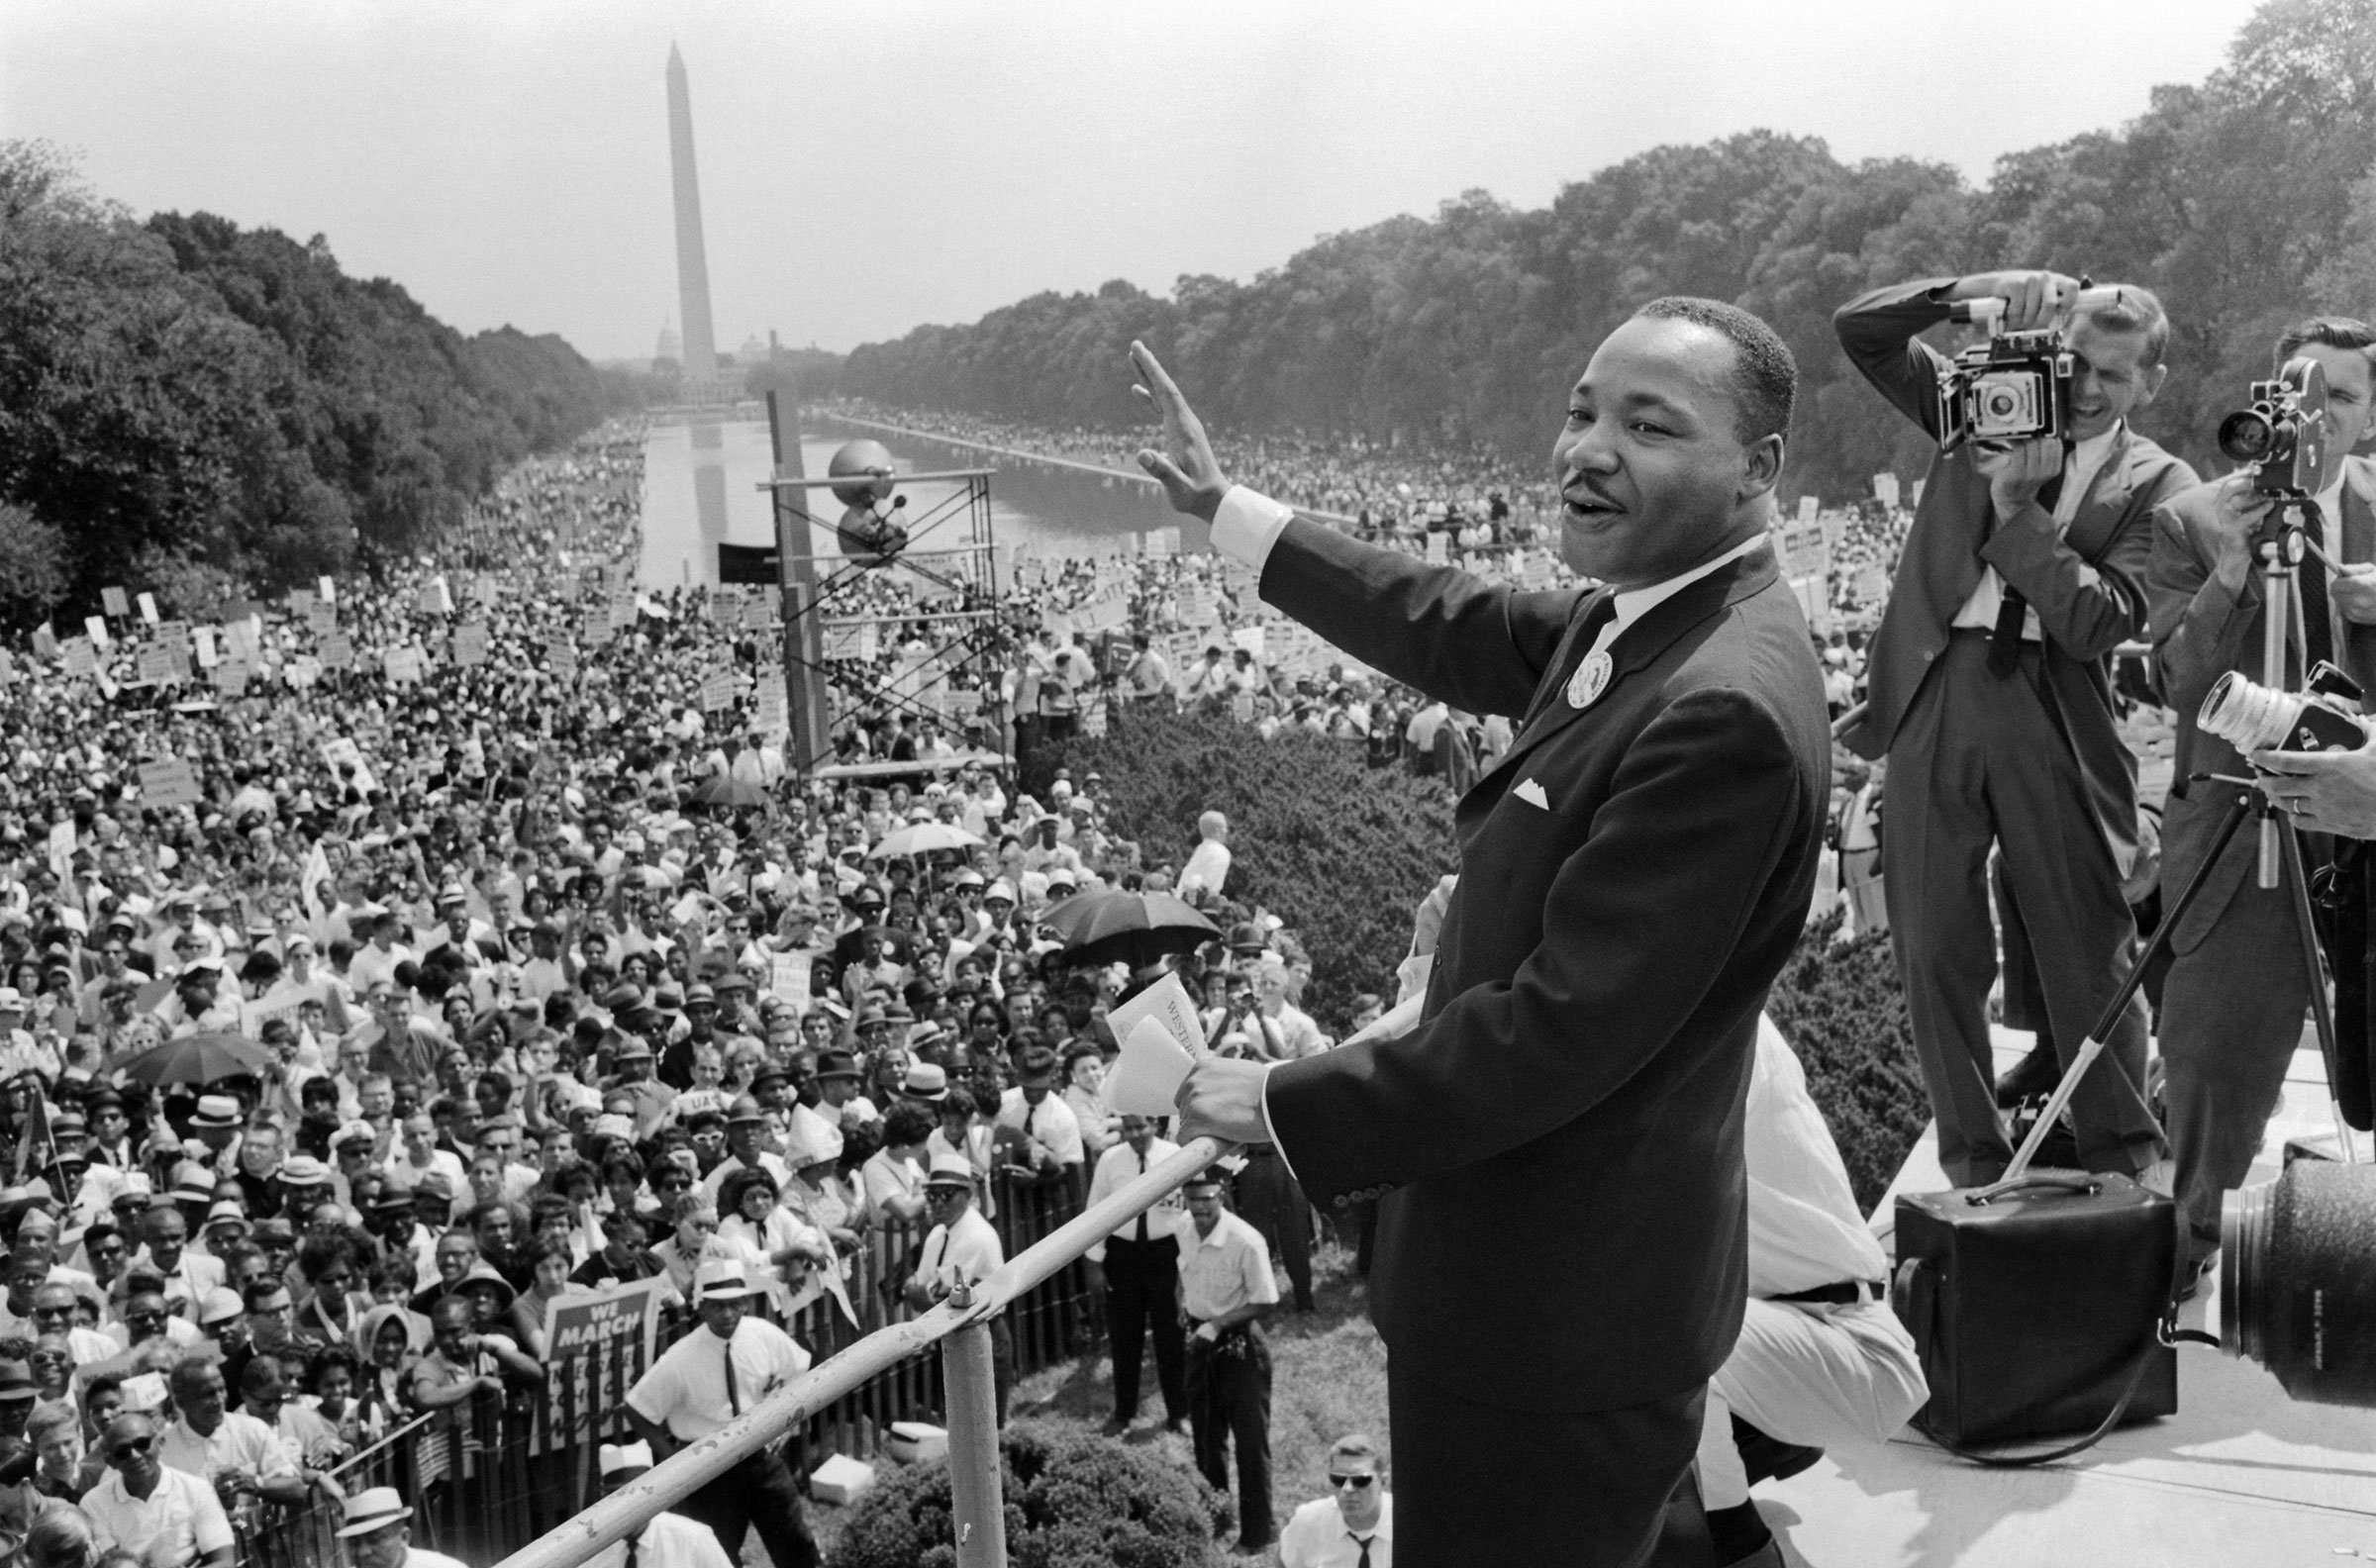 Dr. Martin Luther King, Jr. waves to supporters during the March on Washington on August 28, 1963.